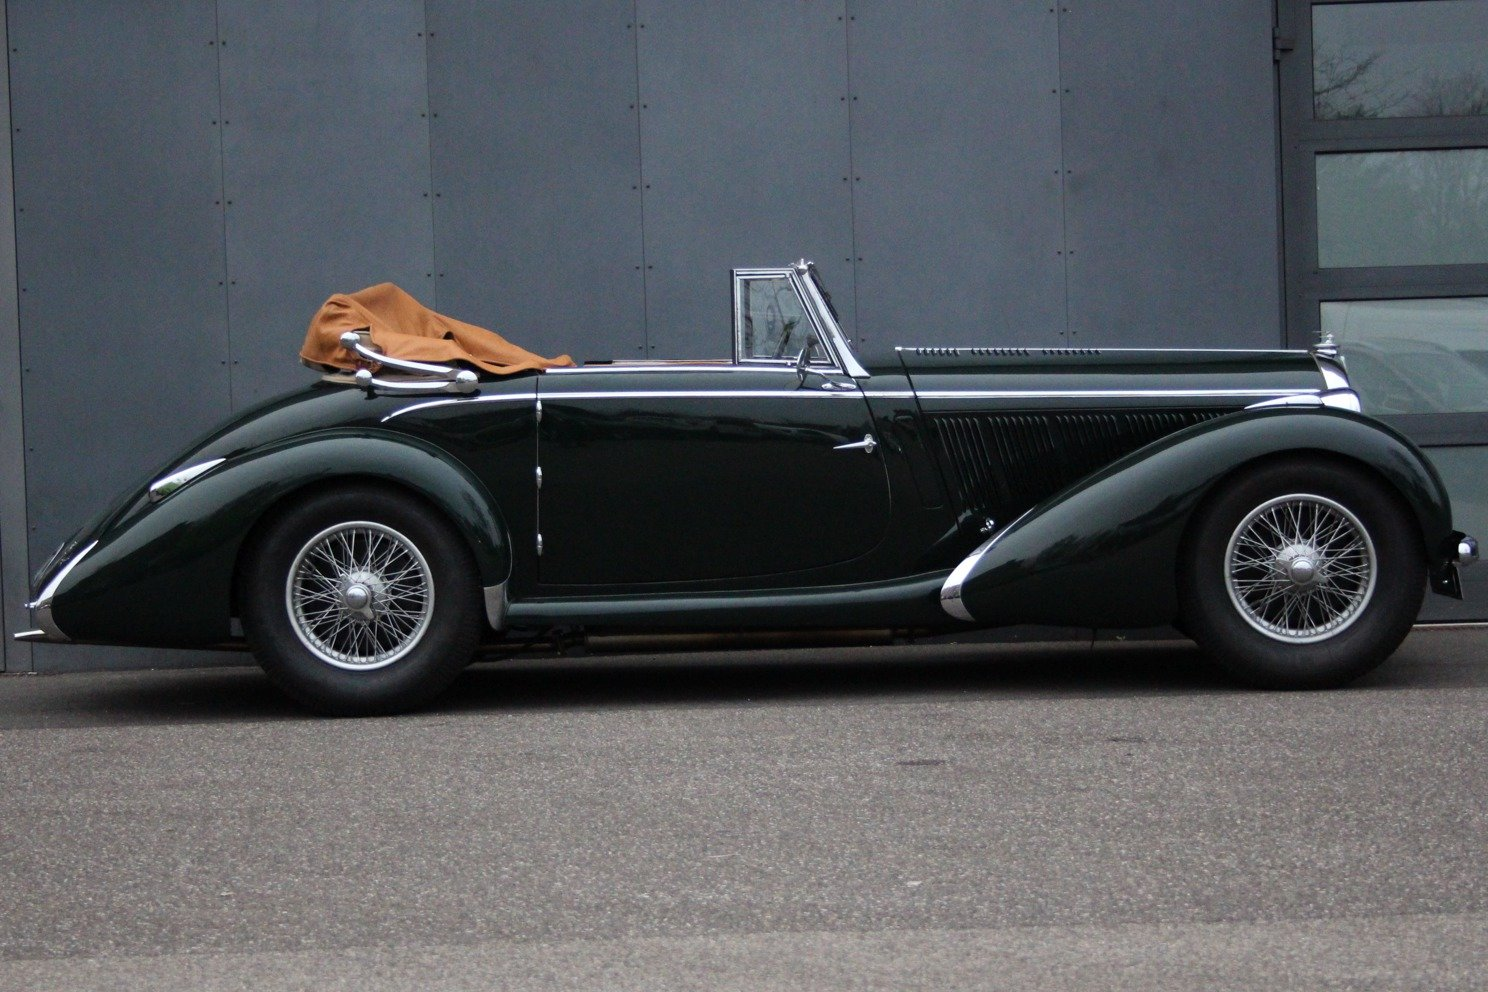 1937 Talbot Lago T150 S Lago Spéciale RHD For Sale (picture 5 of 6)